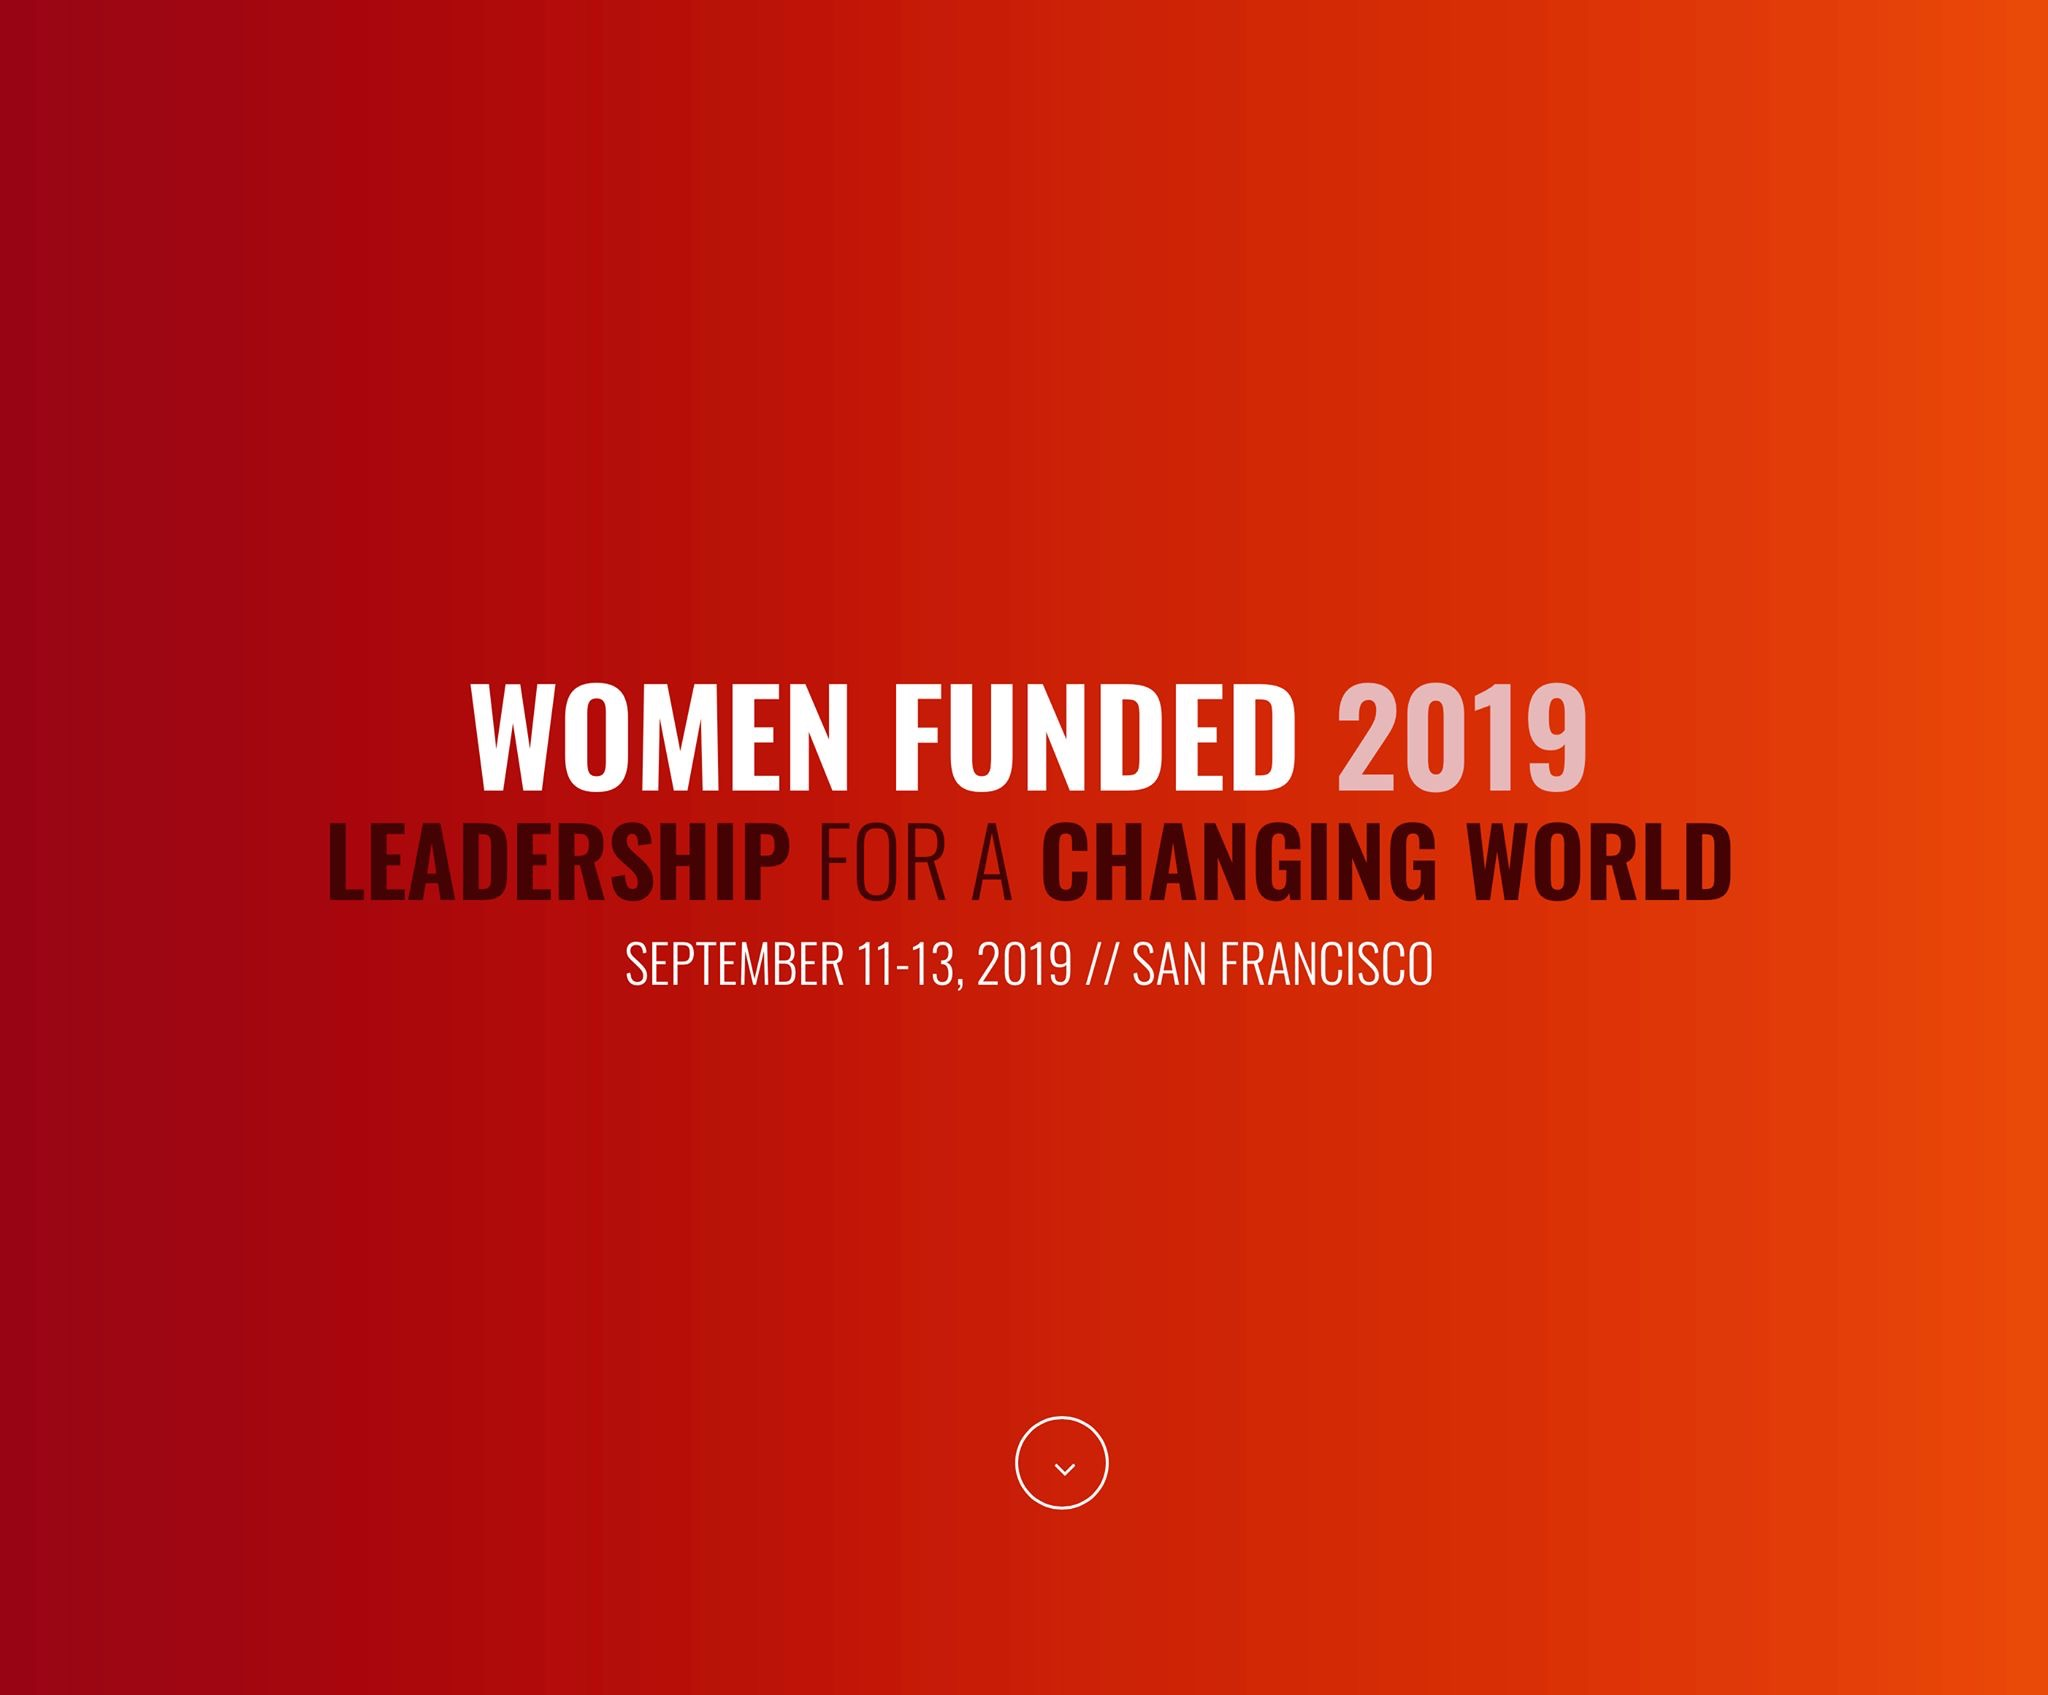 Women Funded 2019 Conference Graphic